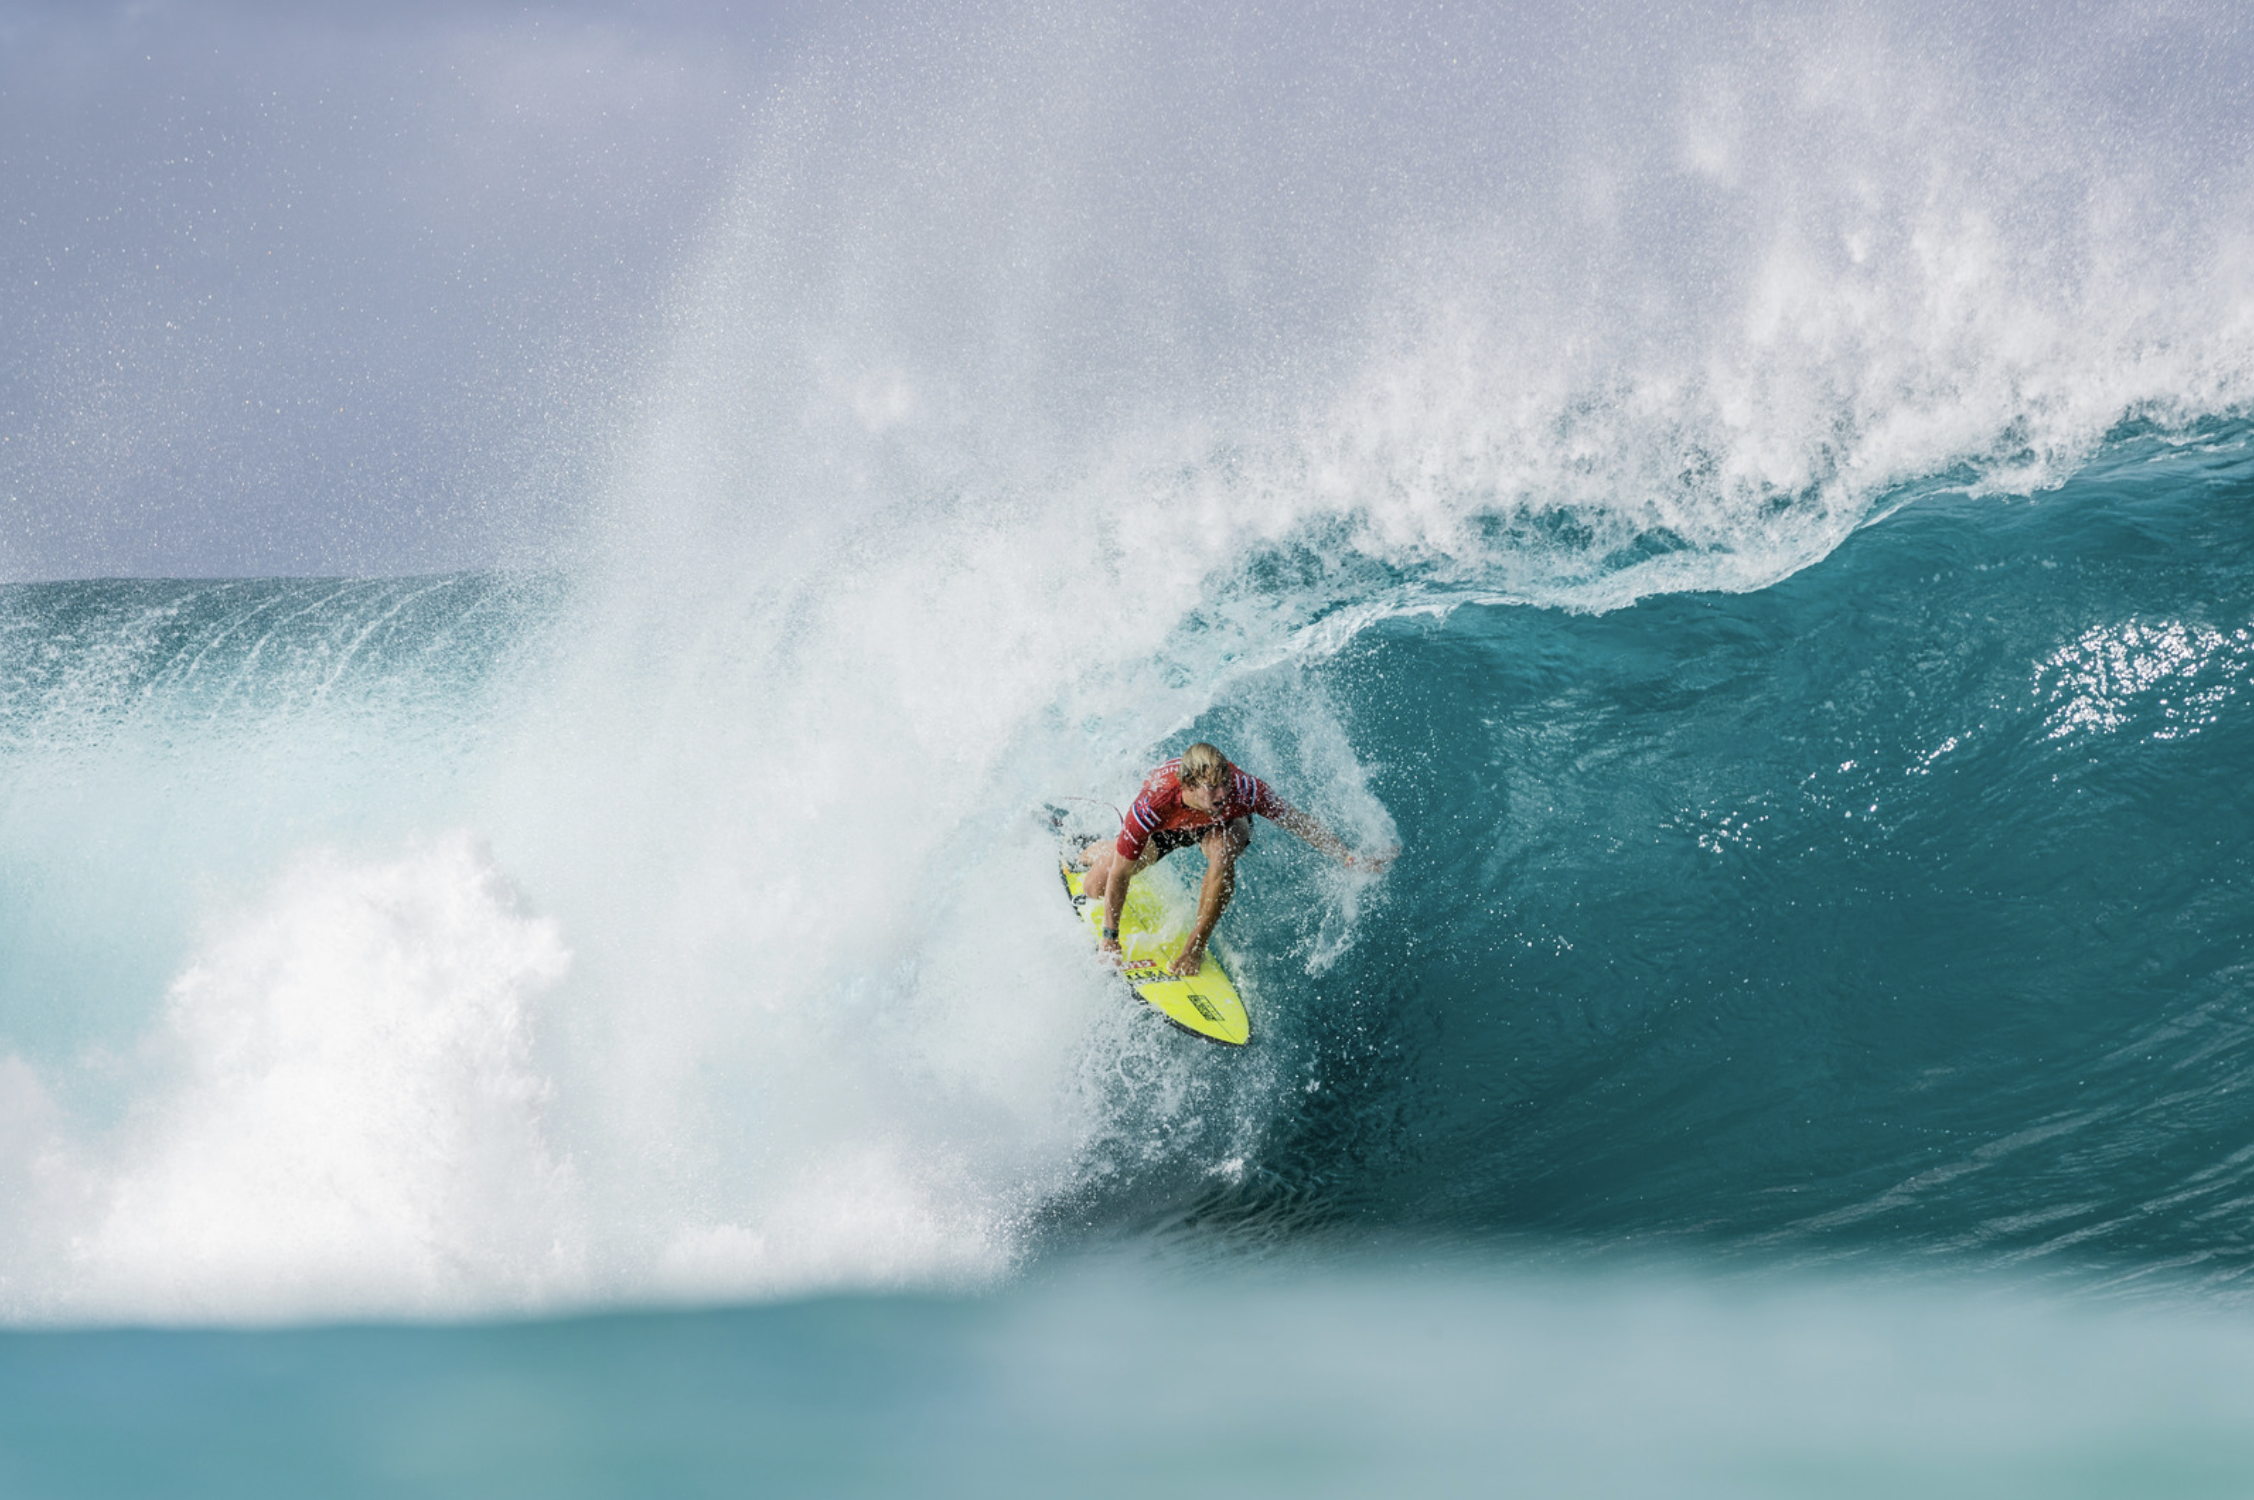 Three Secure Quarterfinal Spots in Pipe Masters, Maui Pro Schedule to be Determined